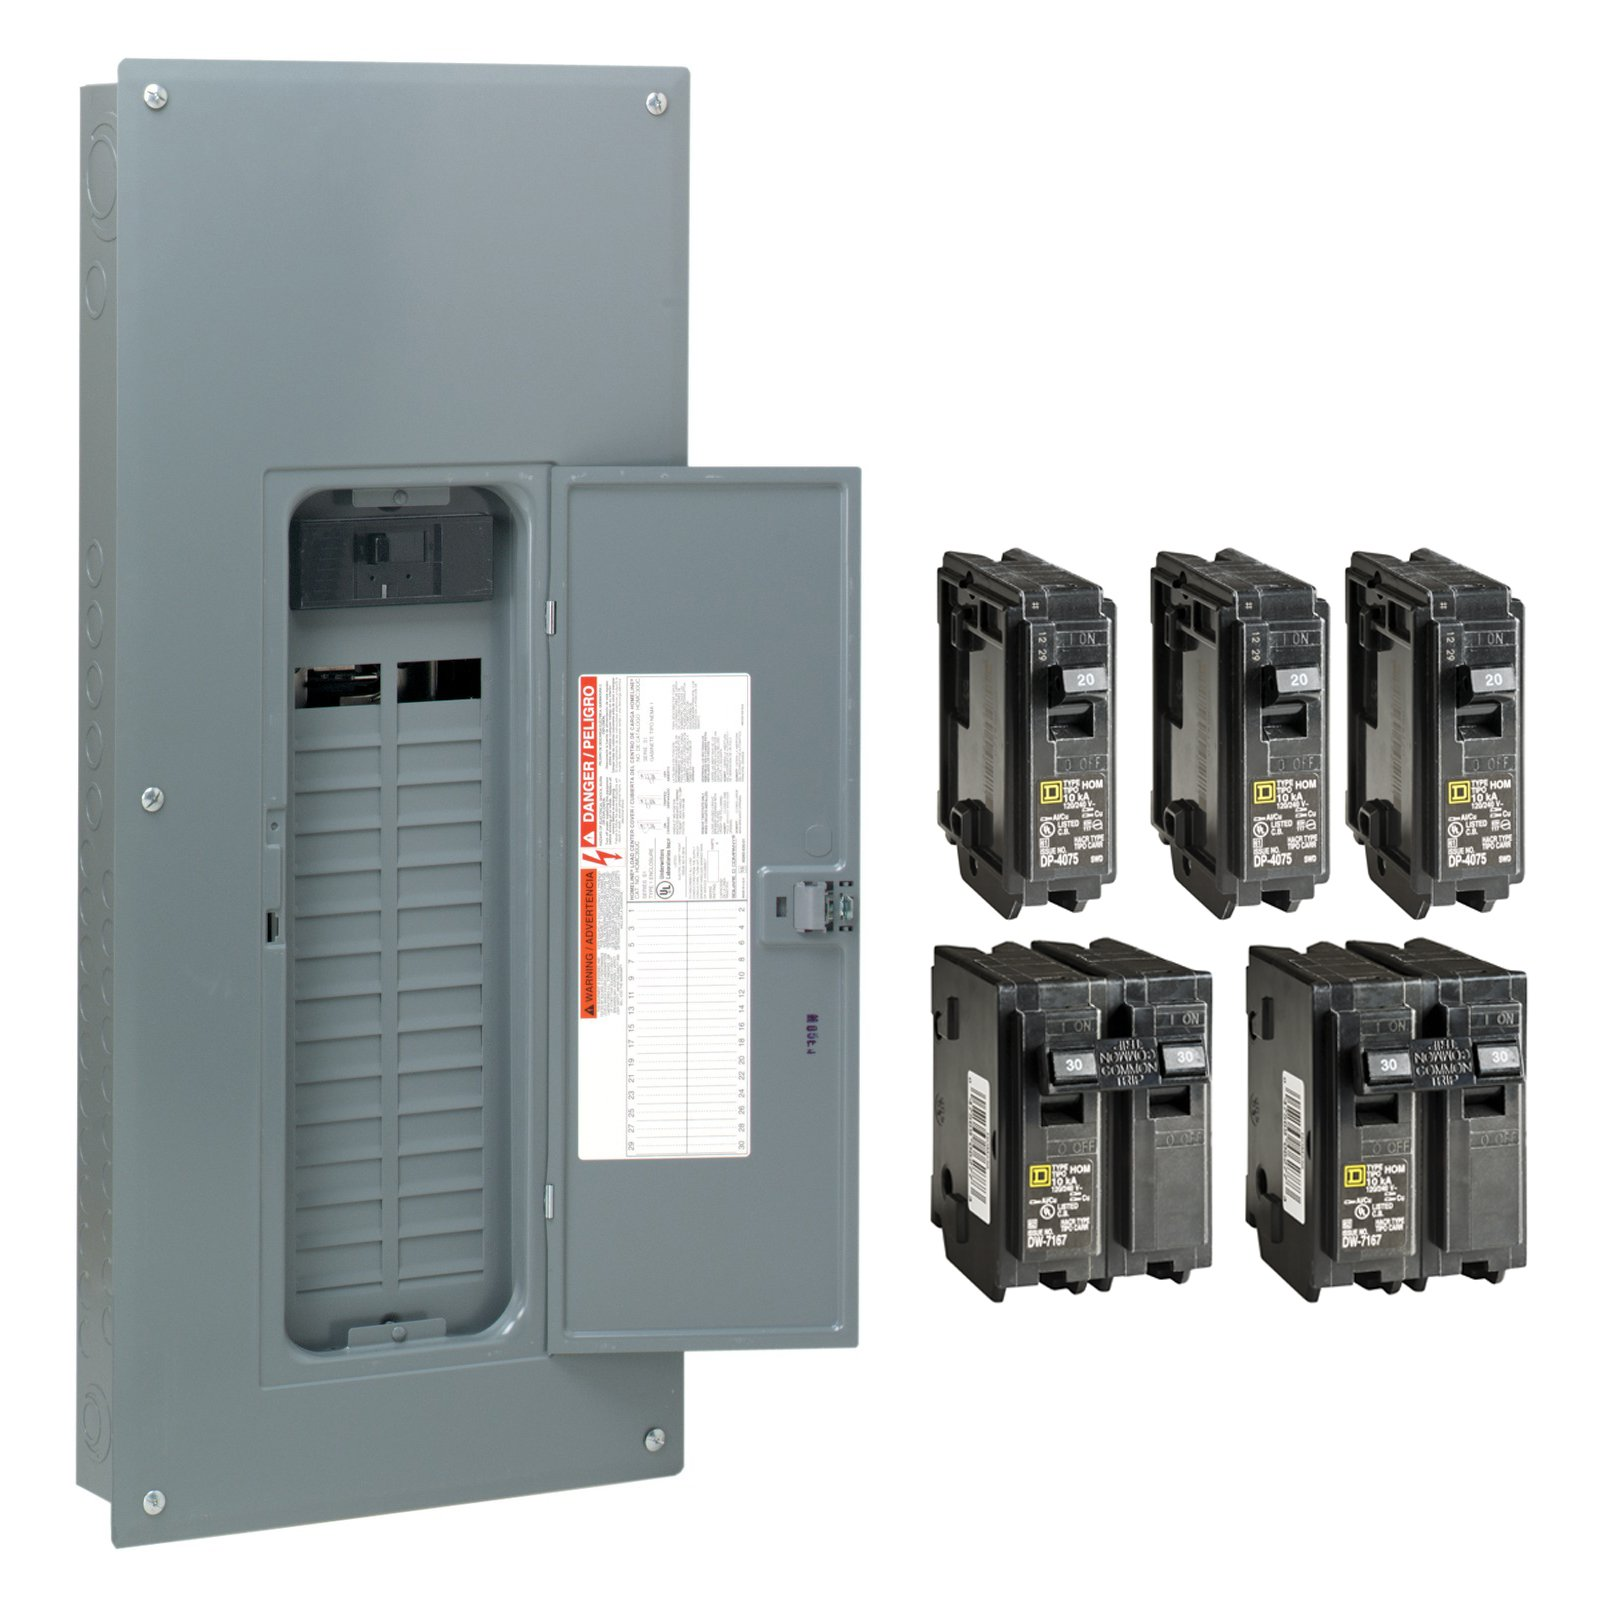 Square D by Schneider Electric HOM3060M150PCVP Homeline 150 Amp 30-Space 60-Circuit Indoor Main Breaker Load Center with Cover - Value Pack (Plug-on Neutral Ready), , by Square D by Schneider Electric